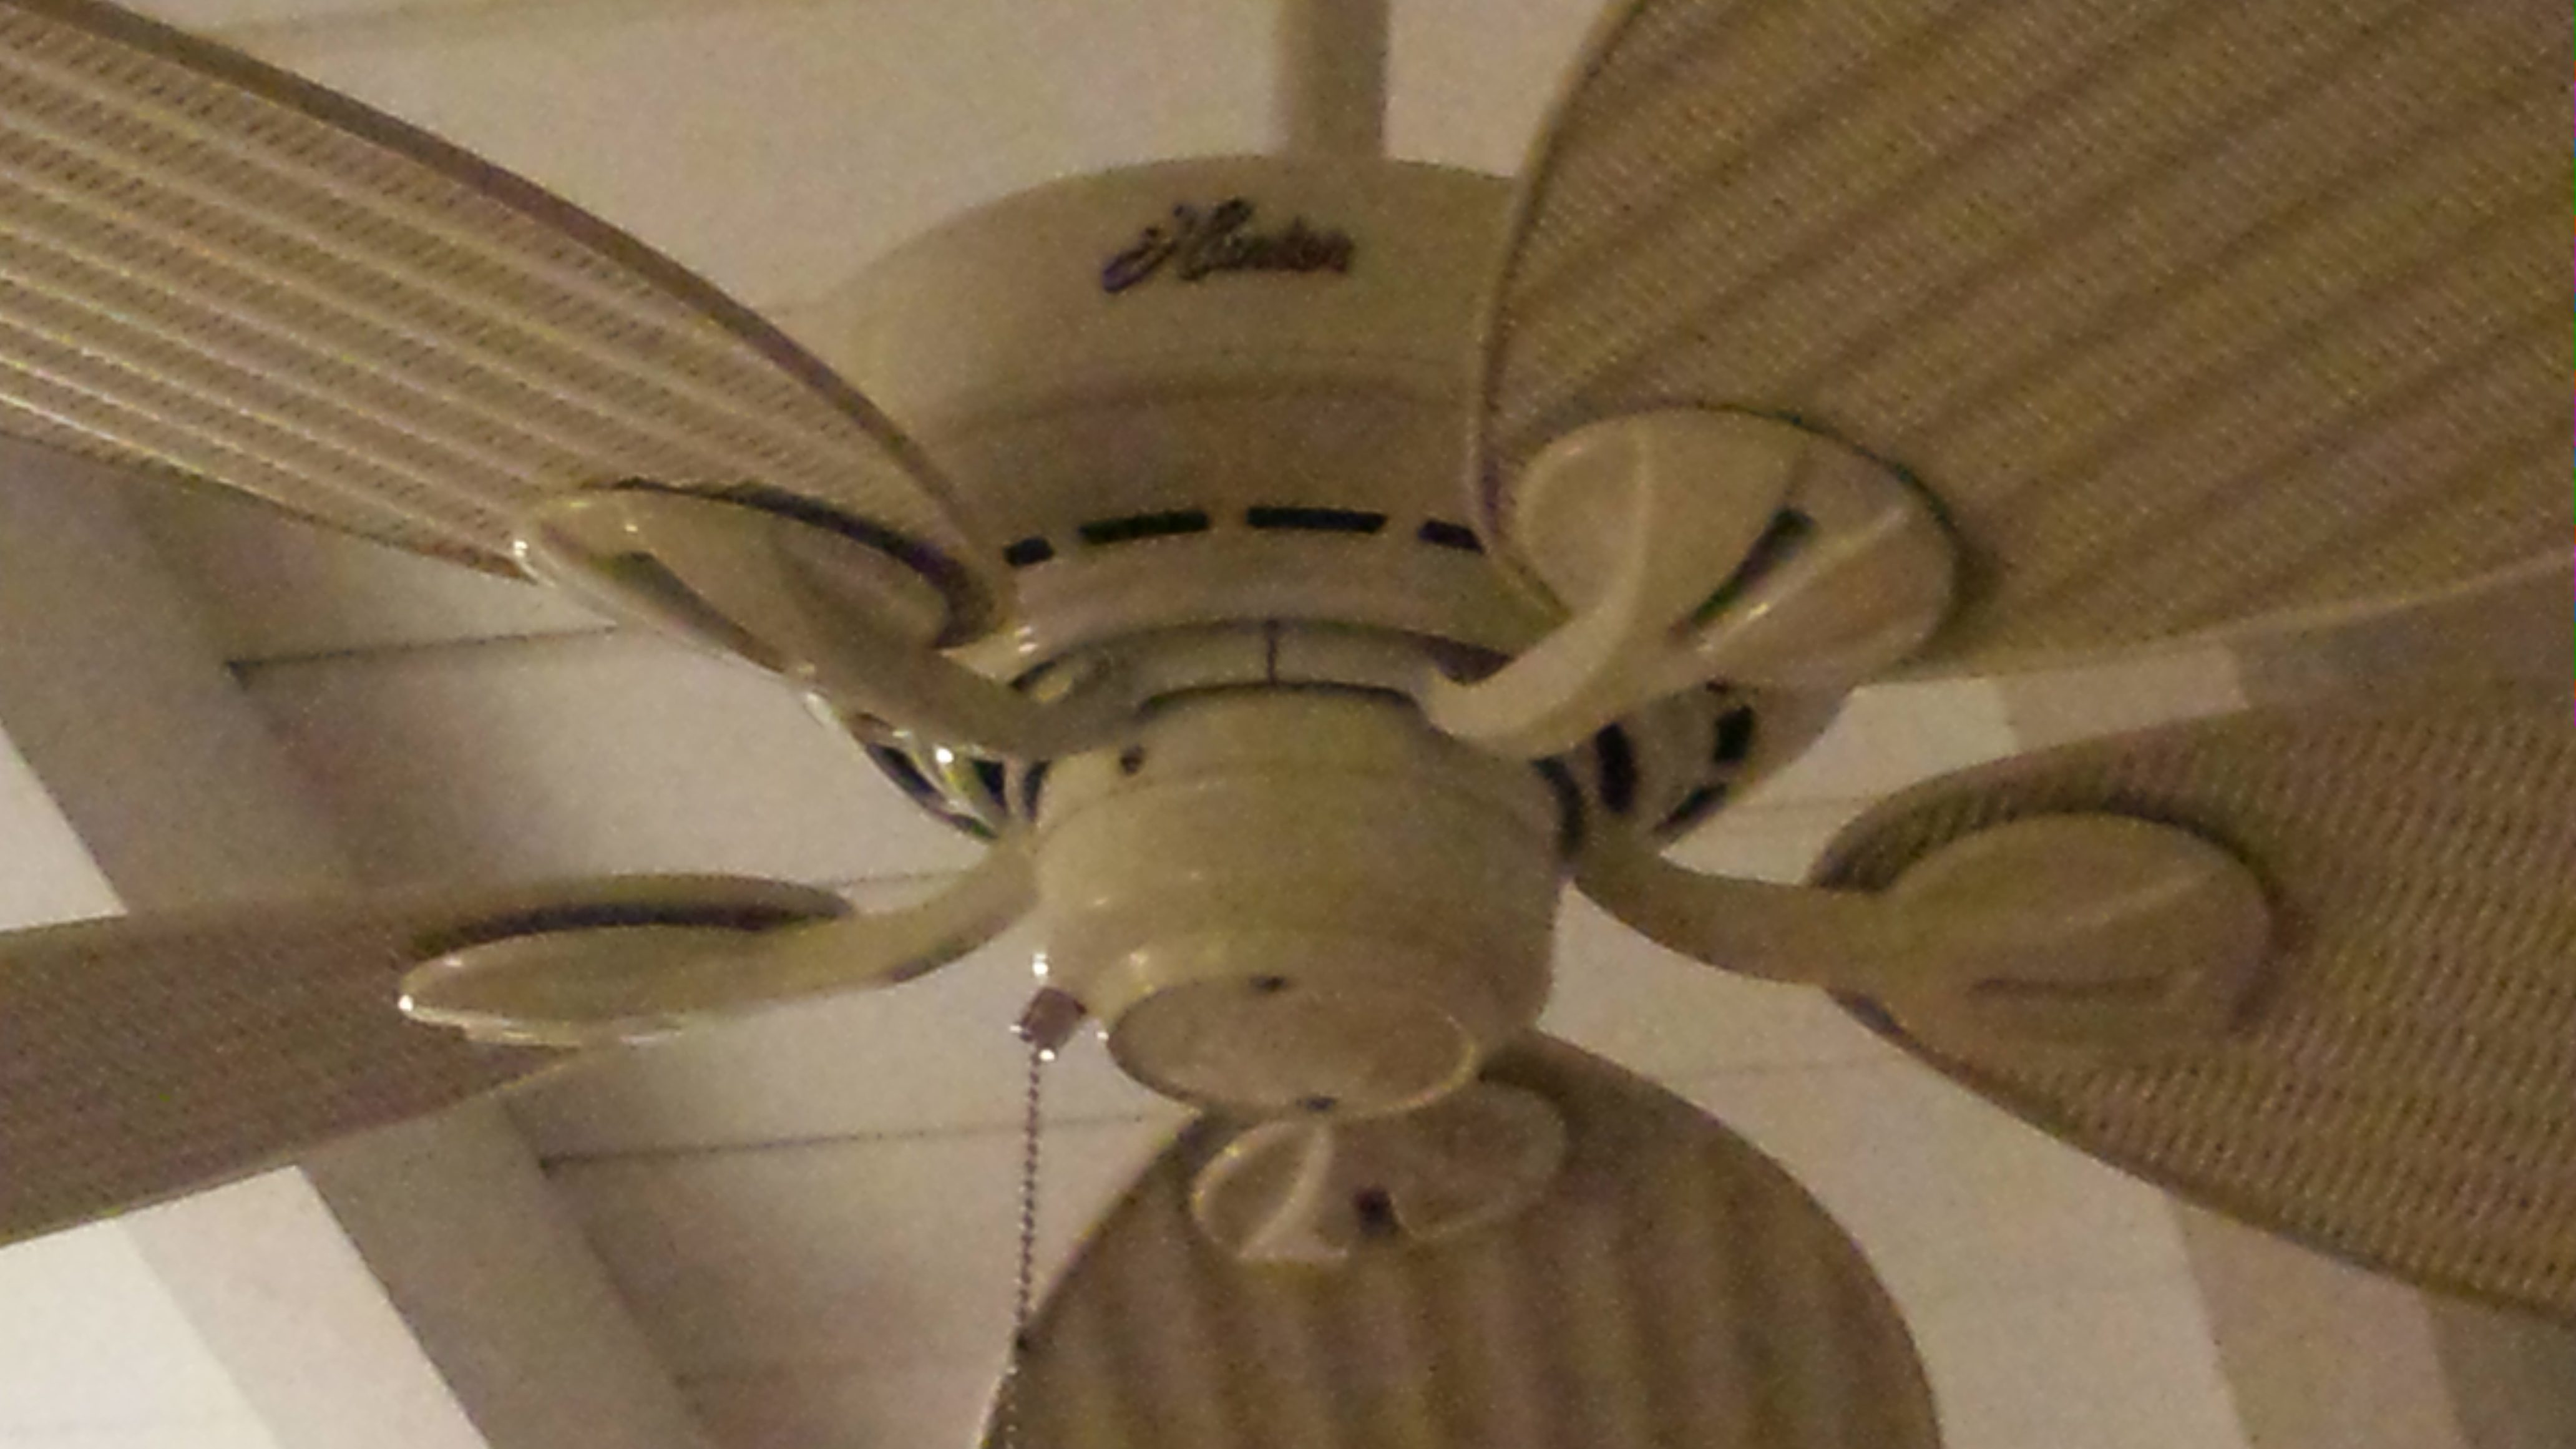 Wiring Diagram, Switch Loop Ceiling Fan | Ms. Fixit | Pinterest ...